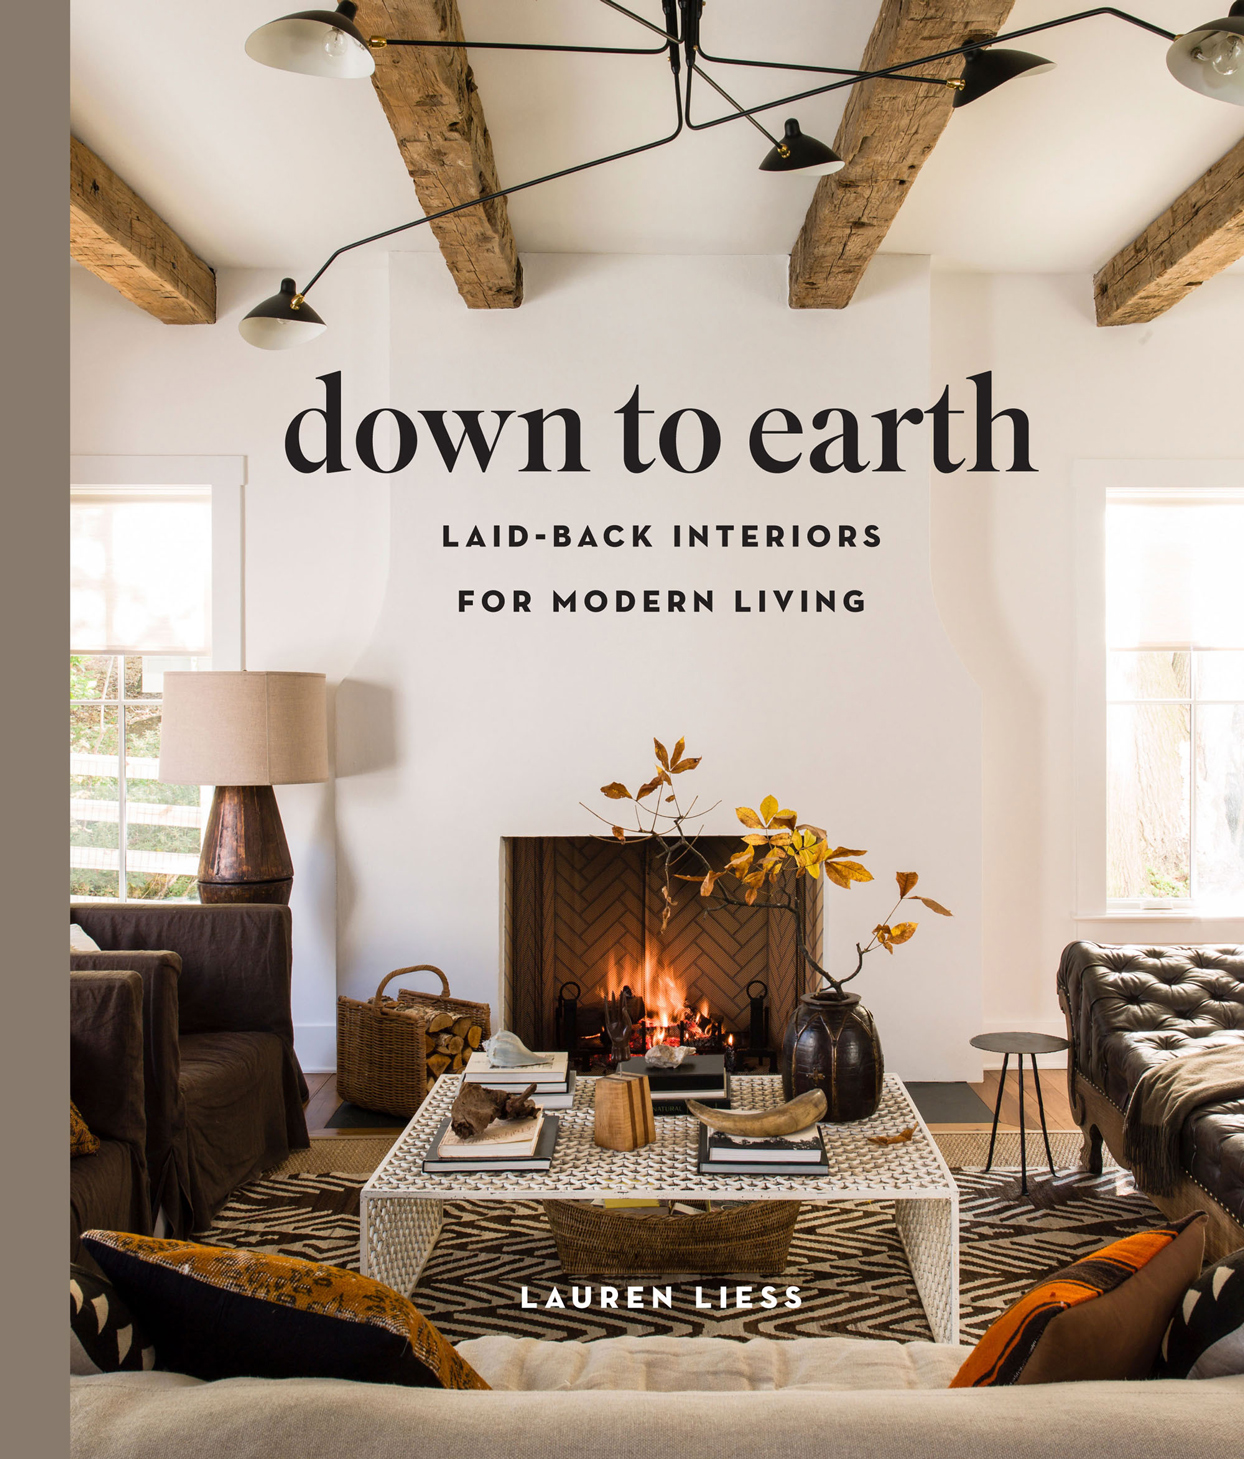 lauren liess down to earth laid-back interiors for modern living book cover